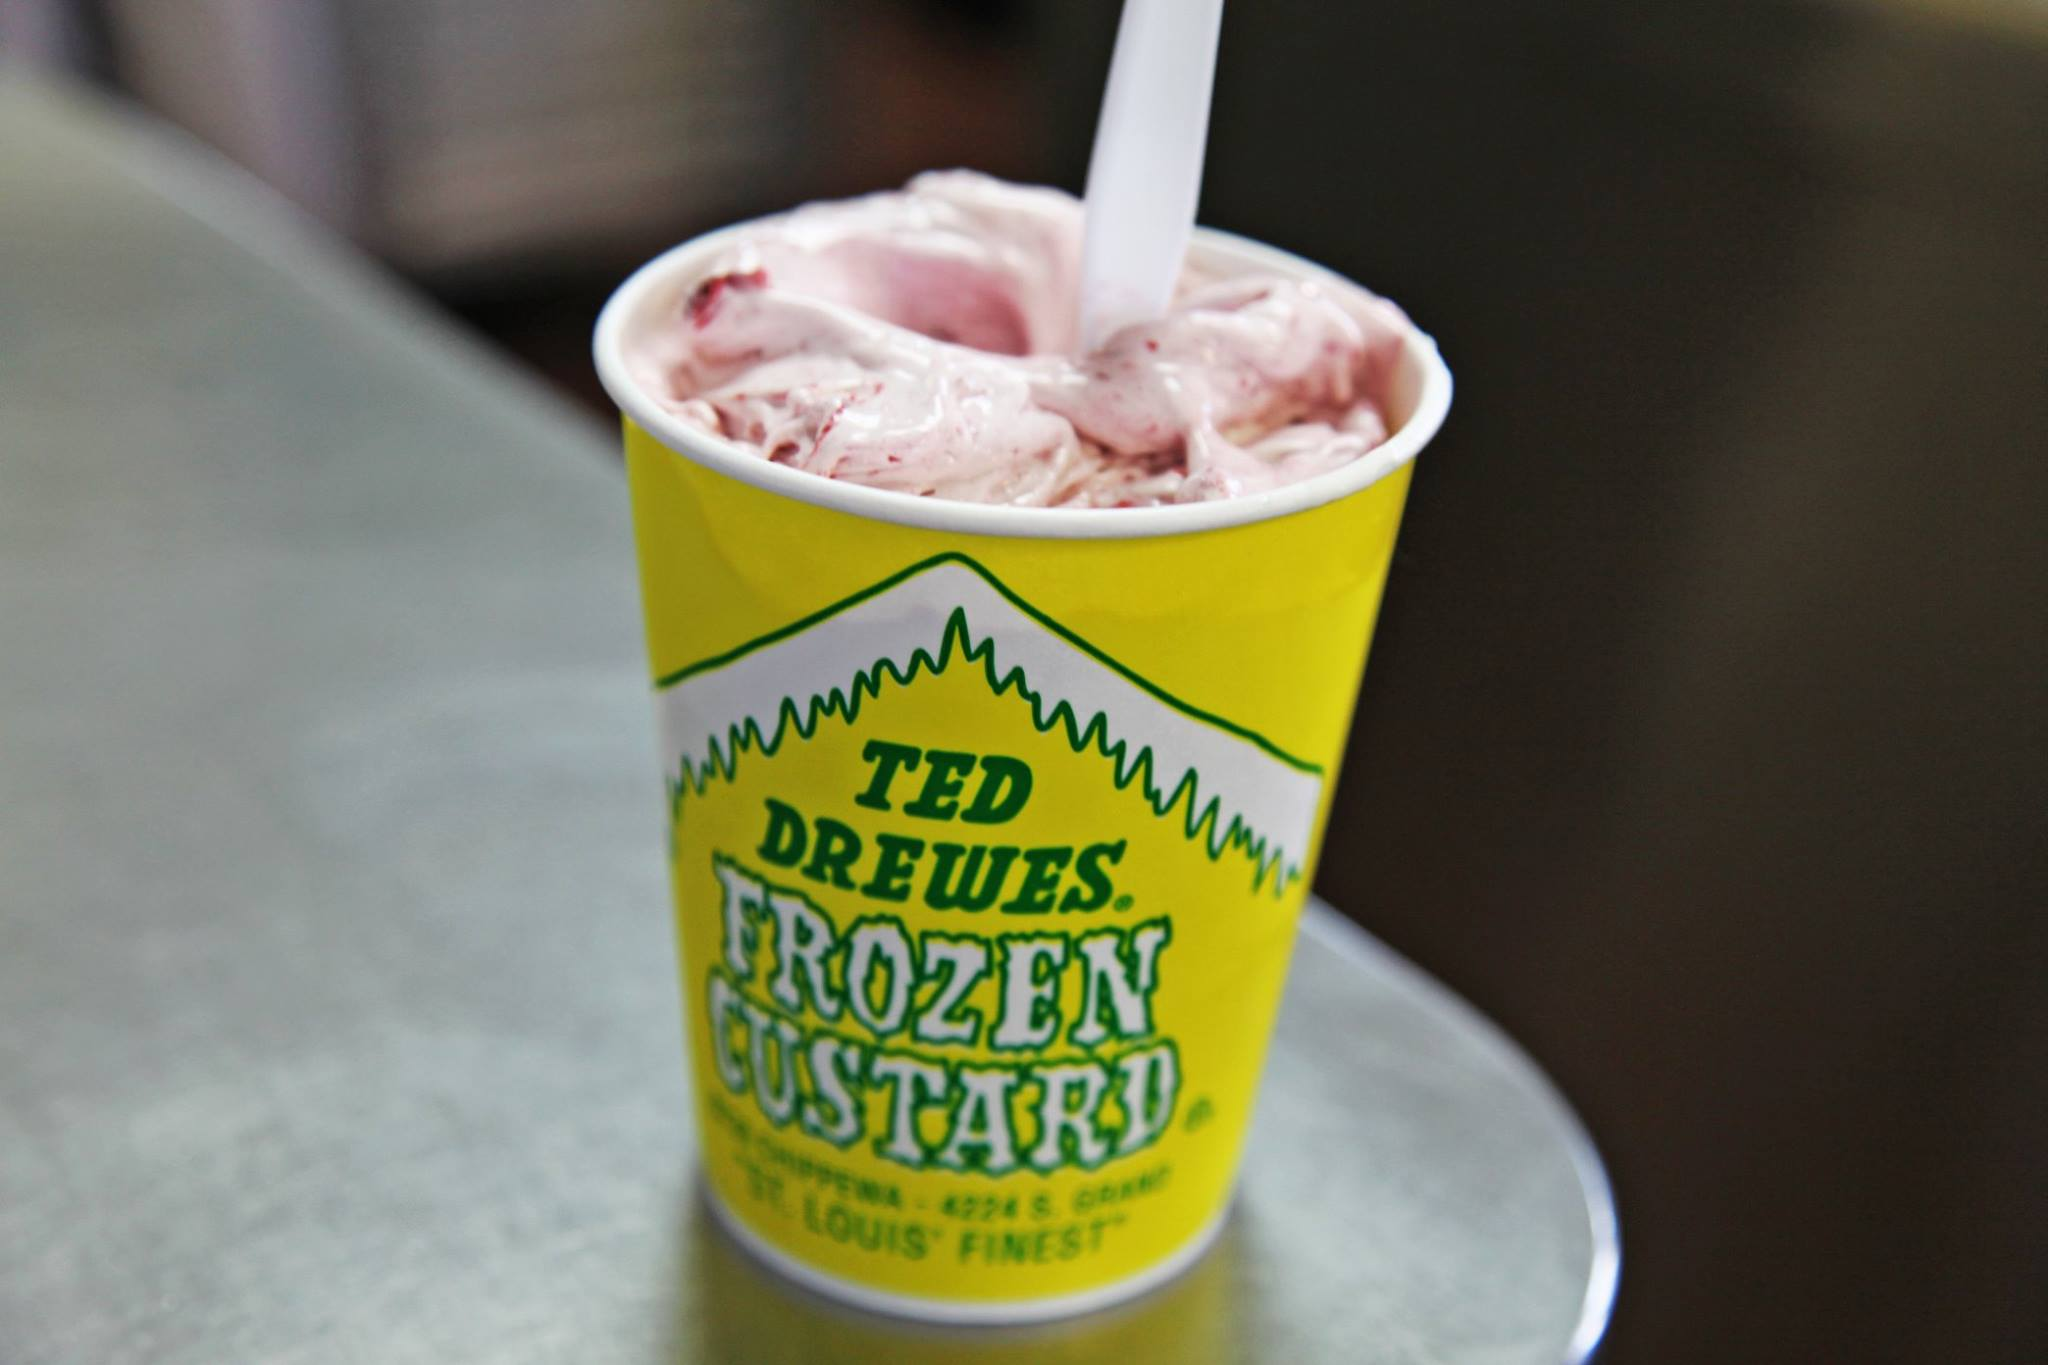 Strawberry frozen custard from Ted Drewes